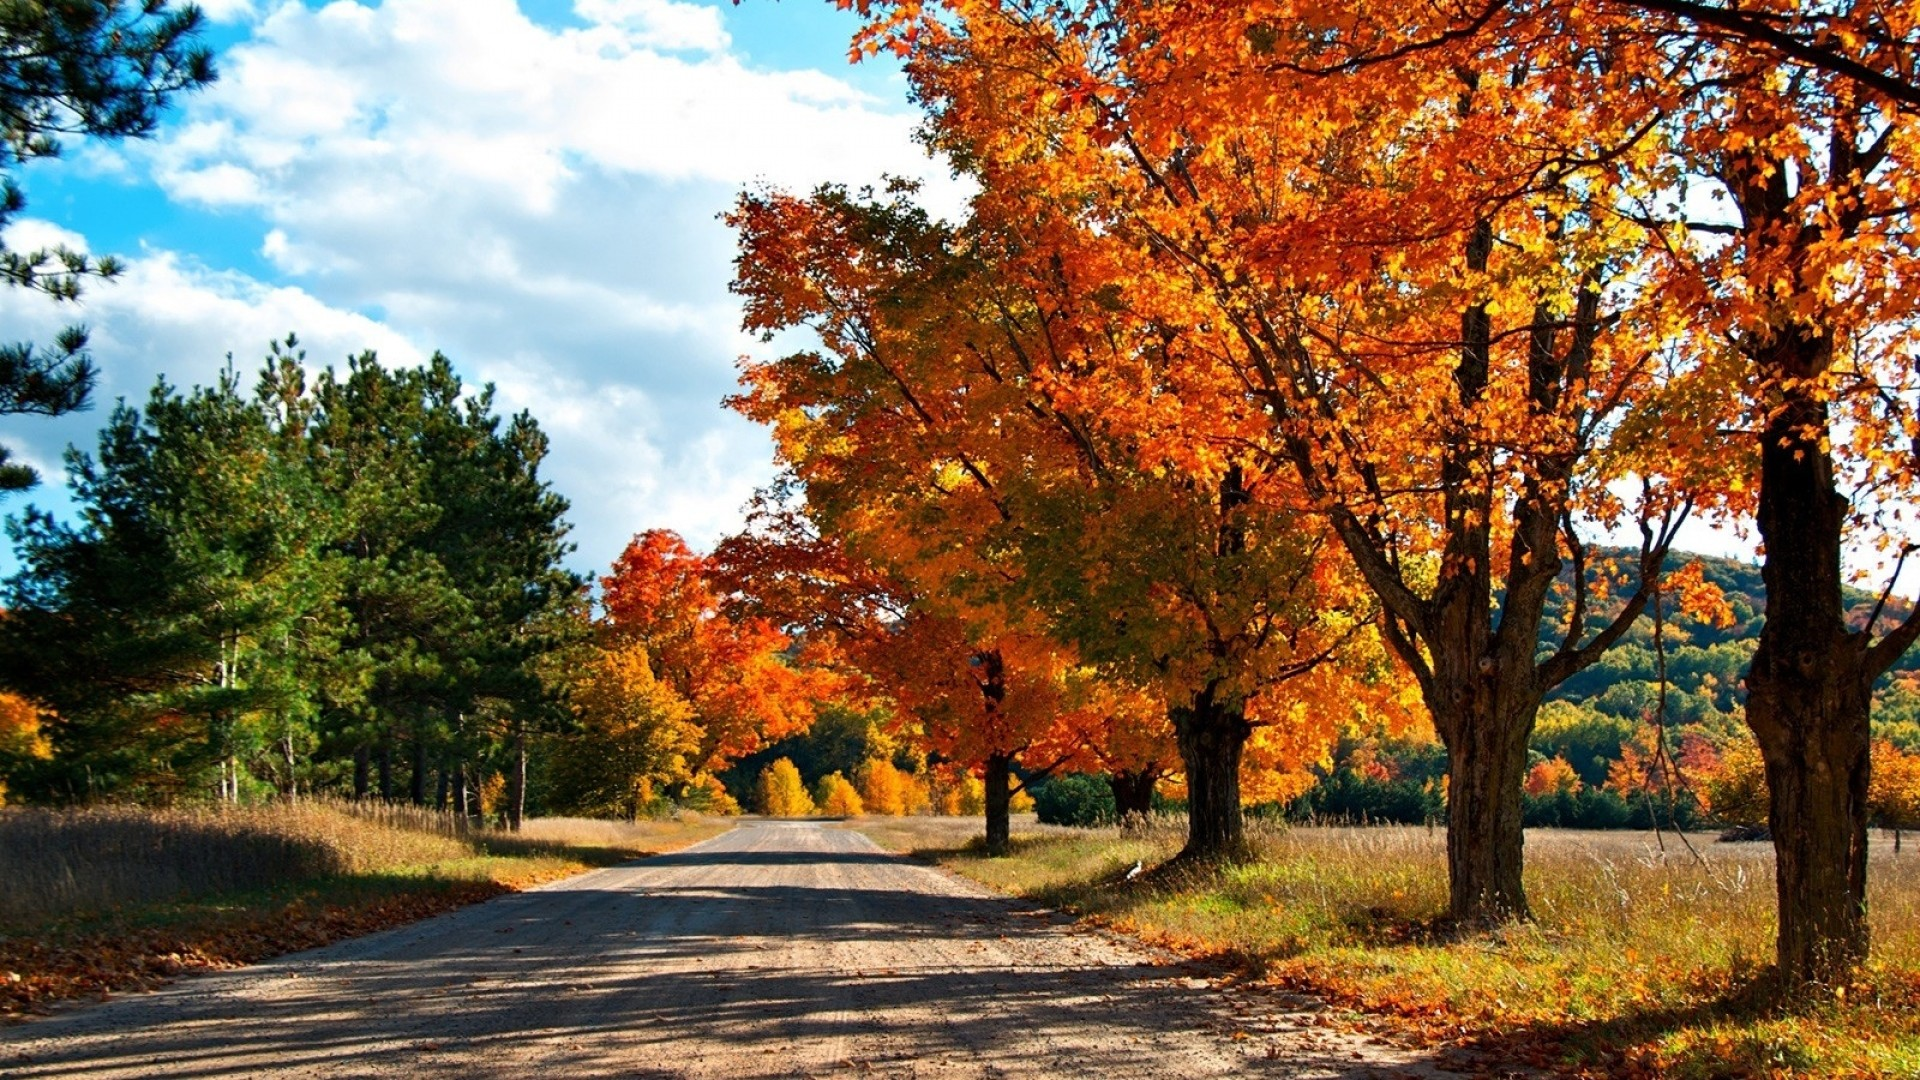 1920x1080 ... Background Full HD 1080p.  Wallpaper autumn, road, trees,  leaves, yellow, shades